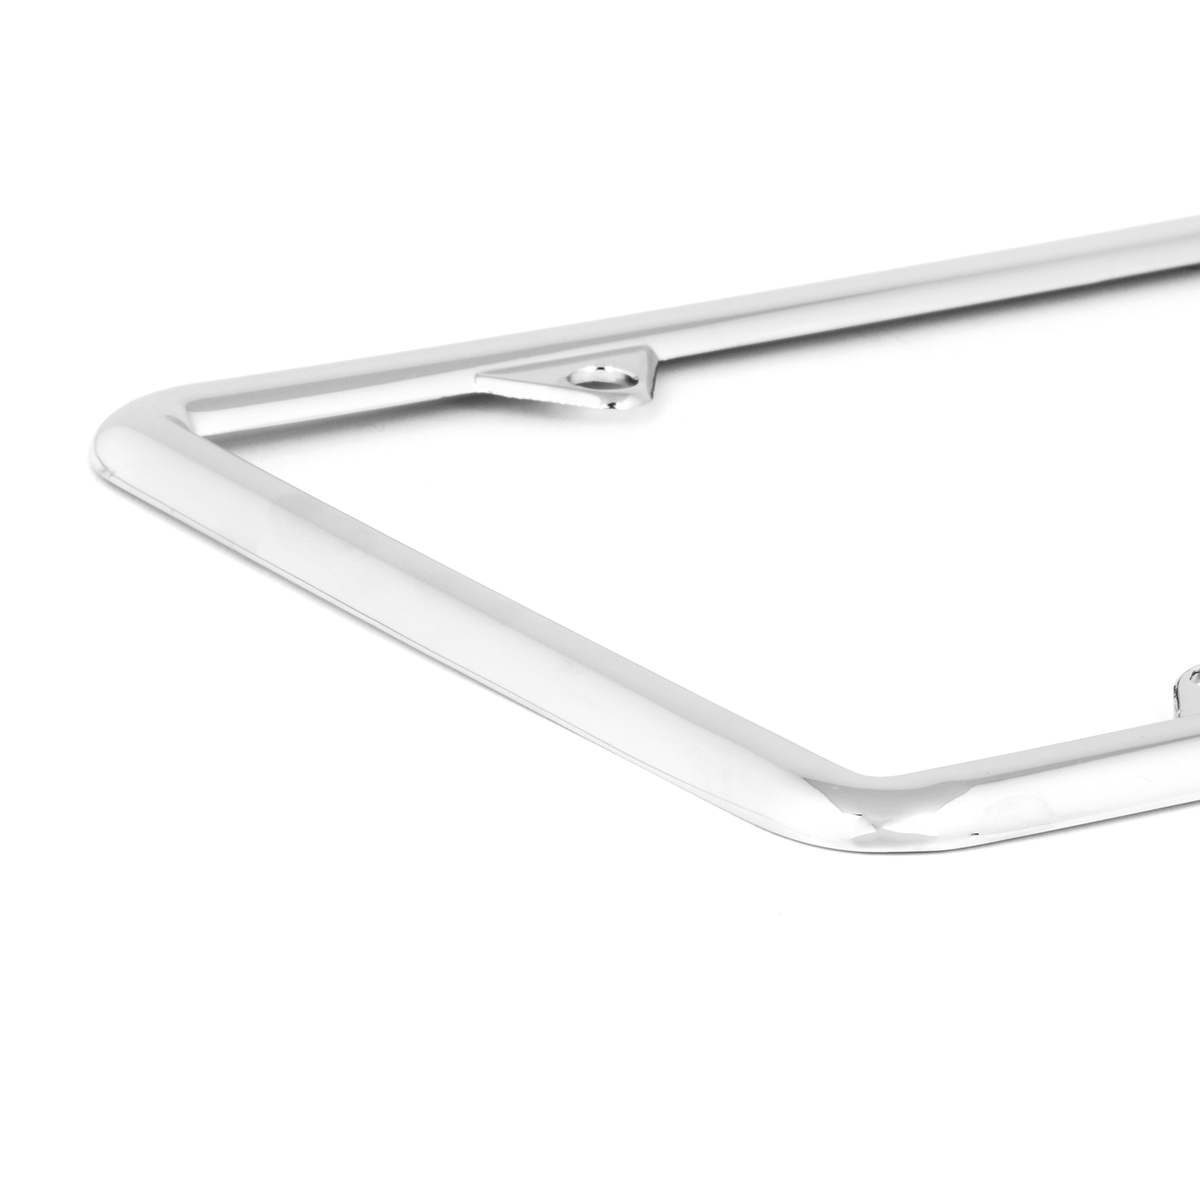 60061 Economic Chrome Zinc Classic 4-Hole License Plate Frames - Close Up View